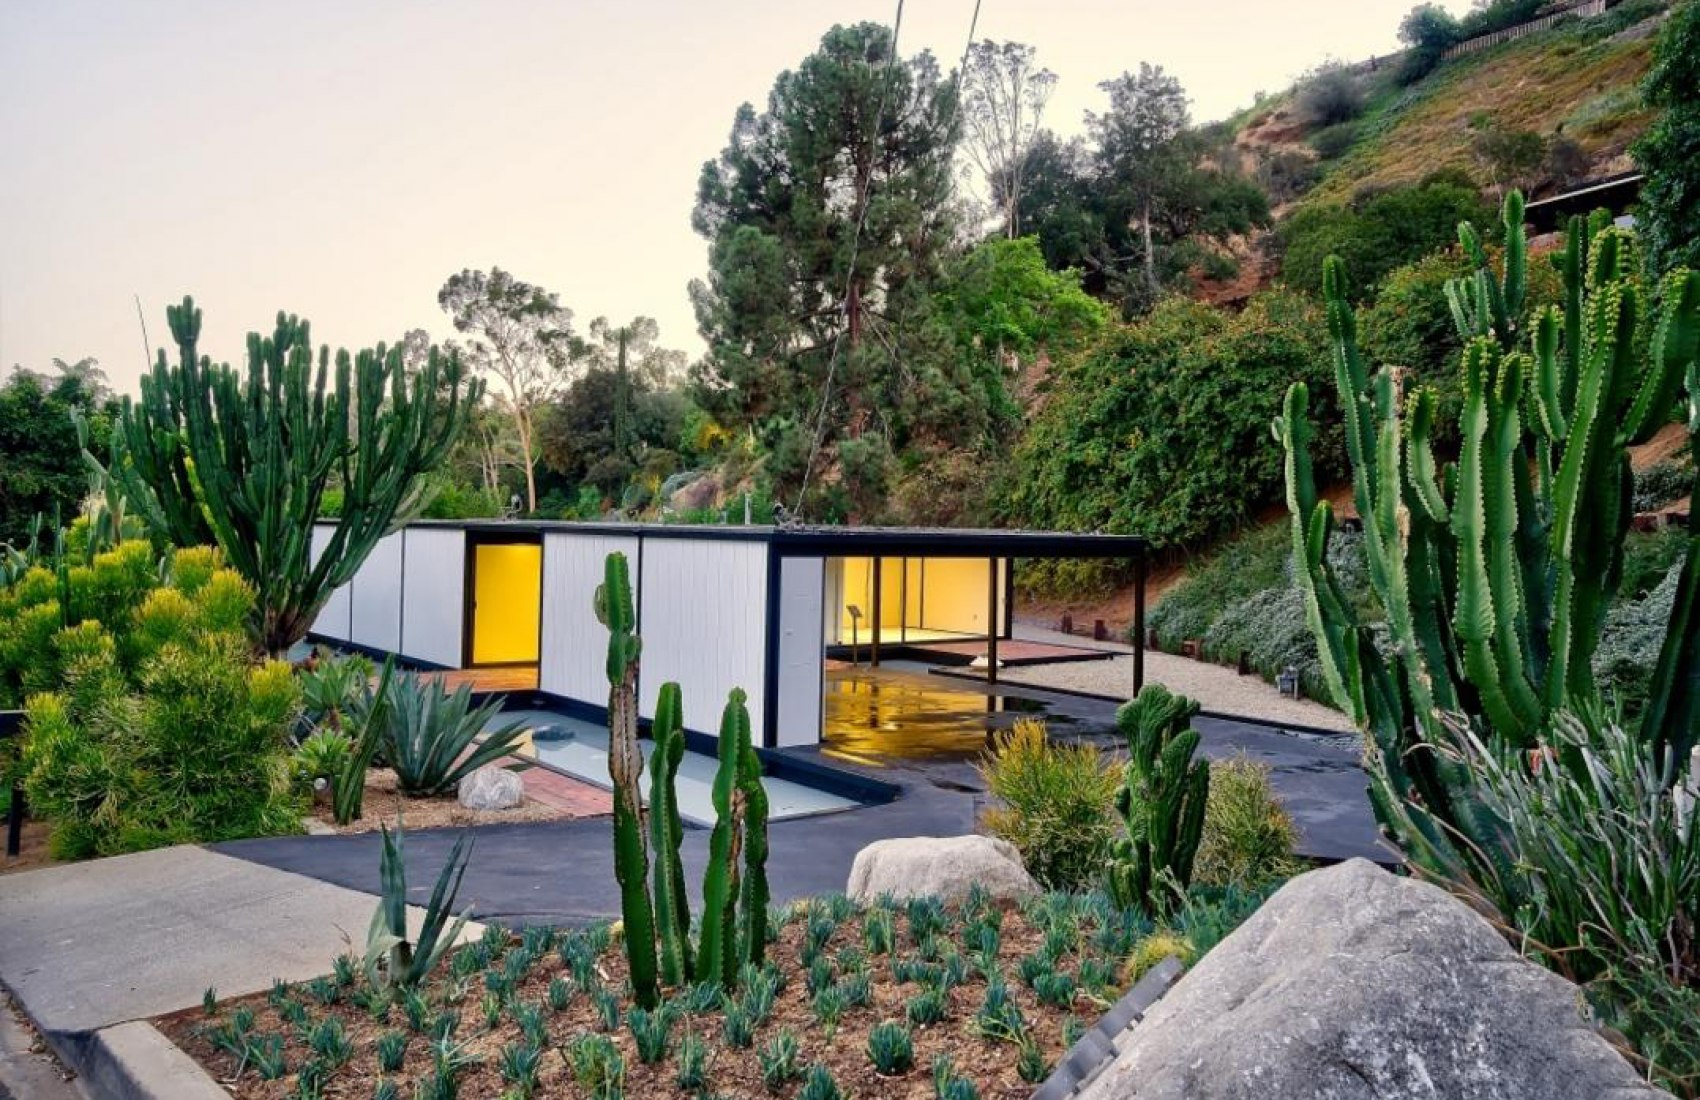 Case Study House #21 by Pierre Koenig. Photograph by Matthew Momberger, courtesy of Pacific Union LA